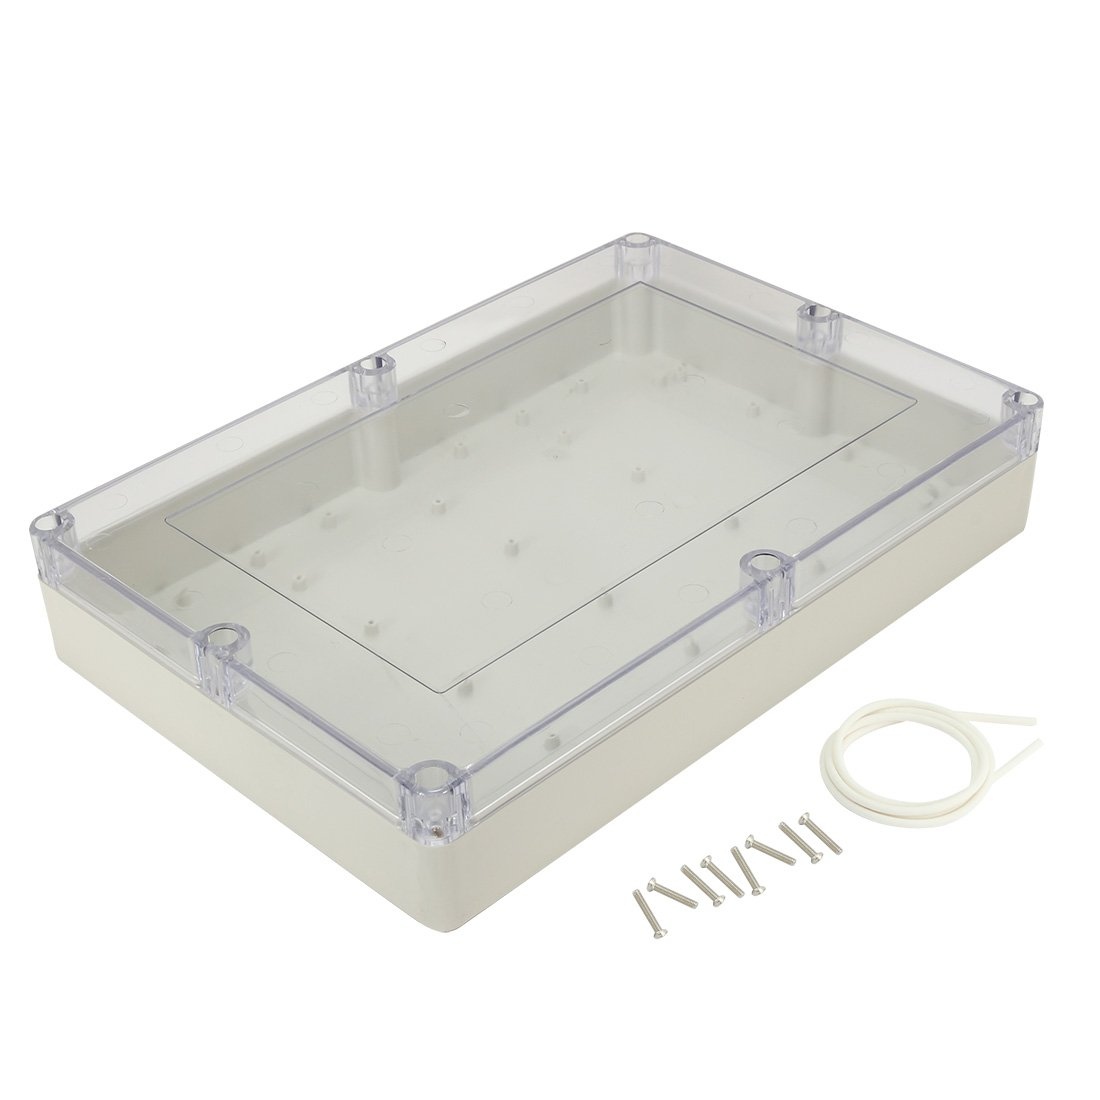 uxcell 4.53'x3.54'x2.16'(115mmx90mmx55mm) ABS Junction Box Electric Project Enclosure Clear a17031600ux1109